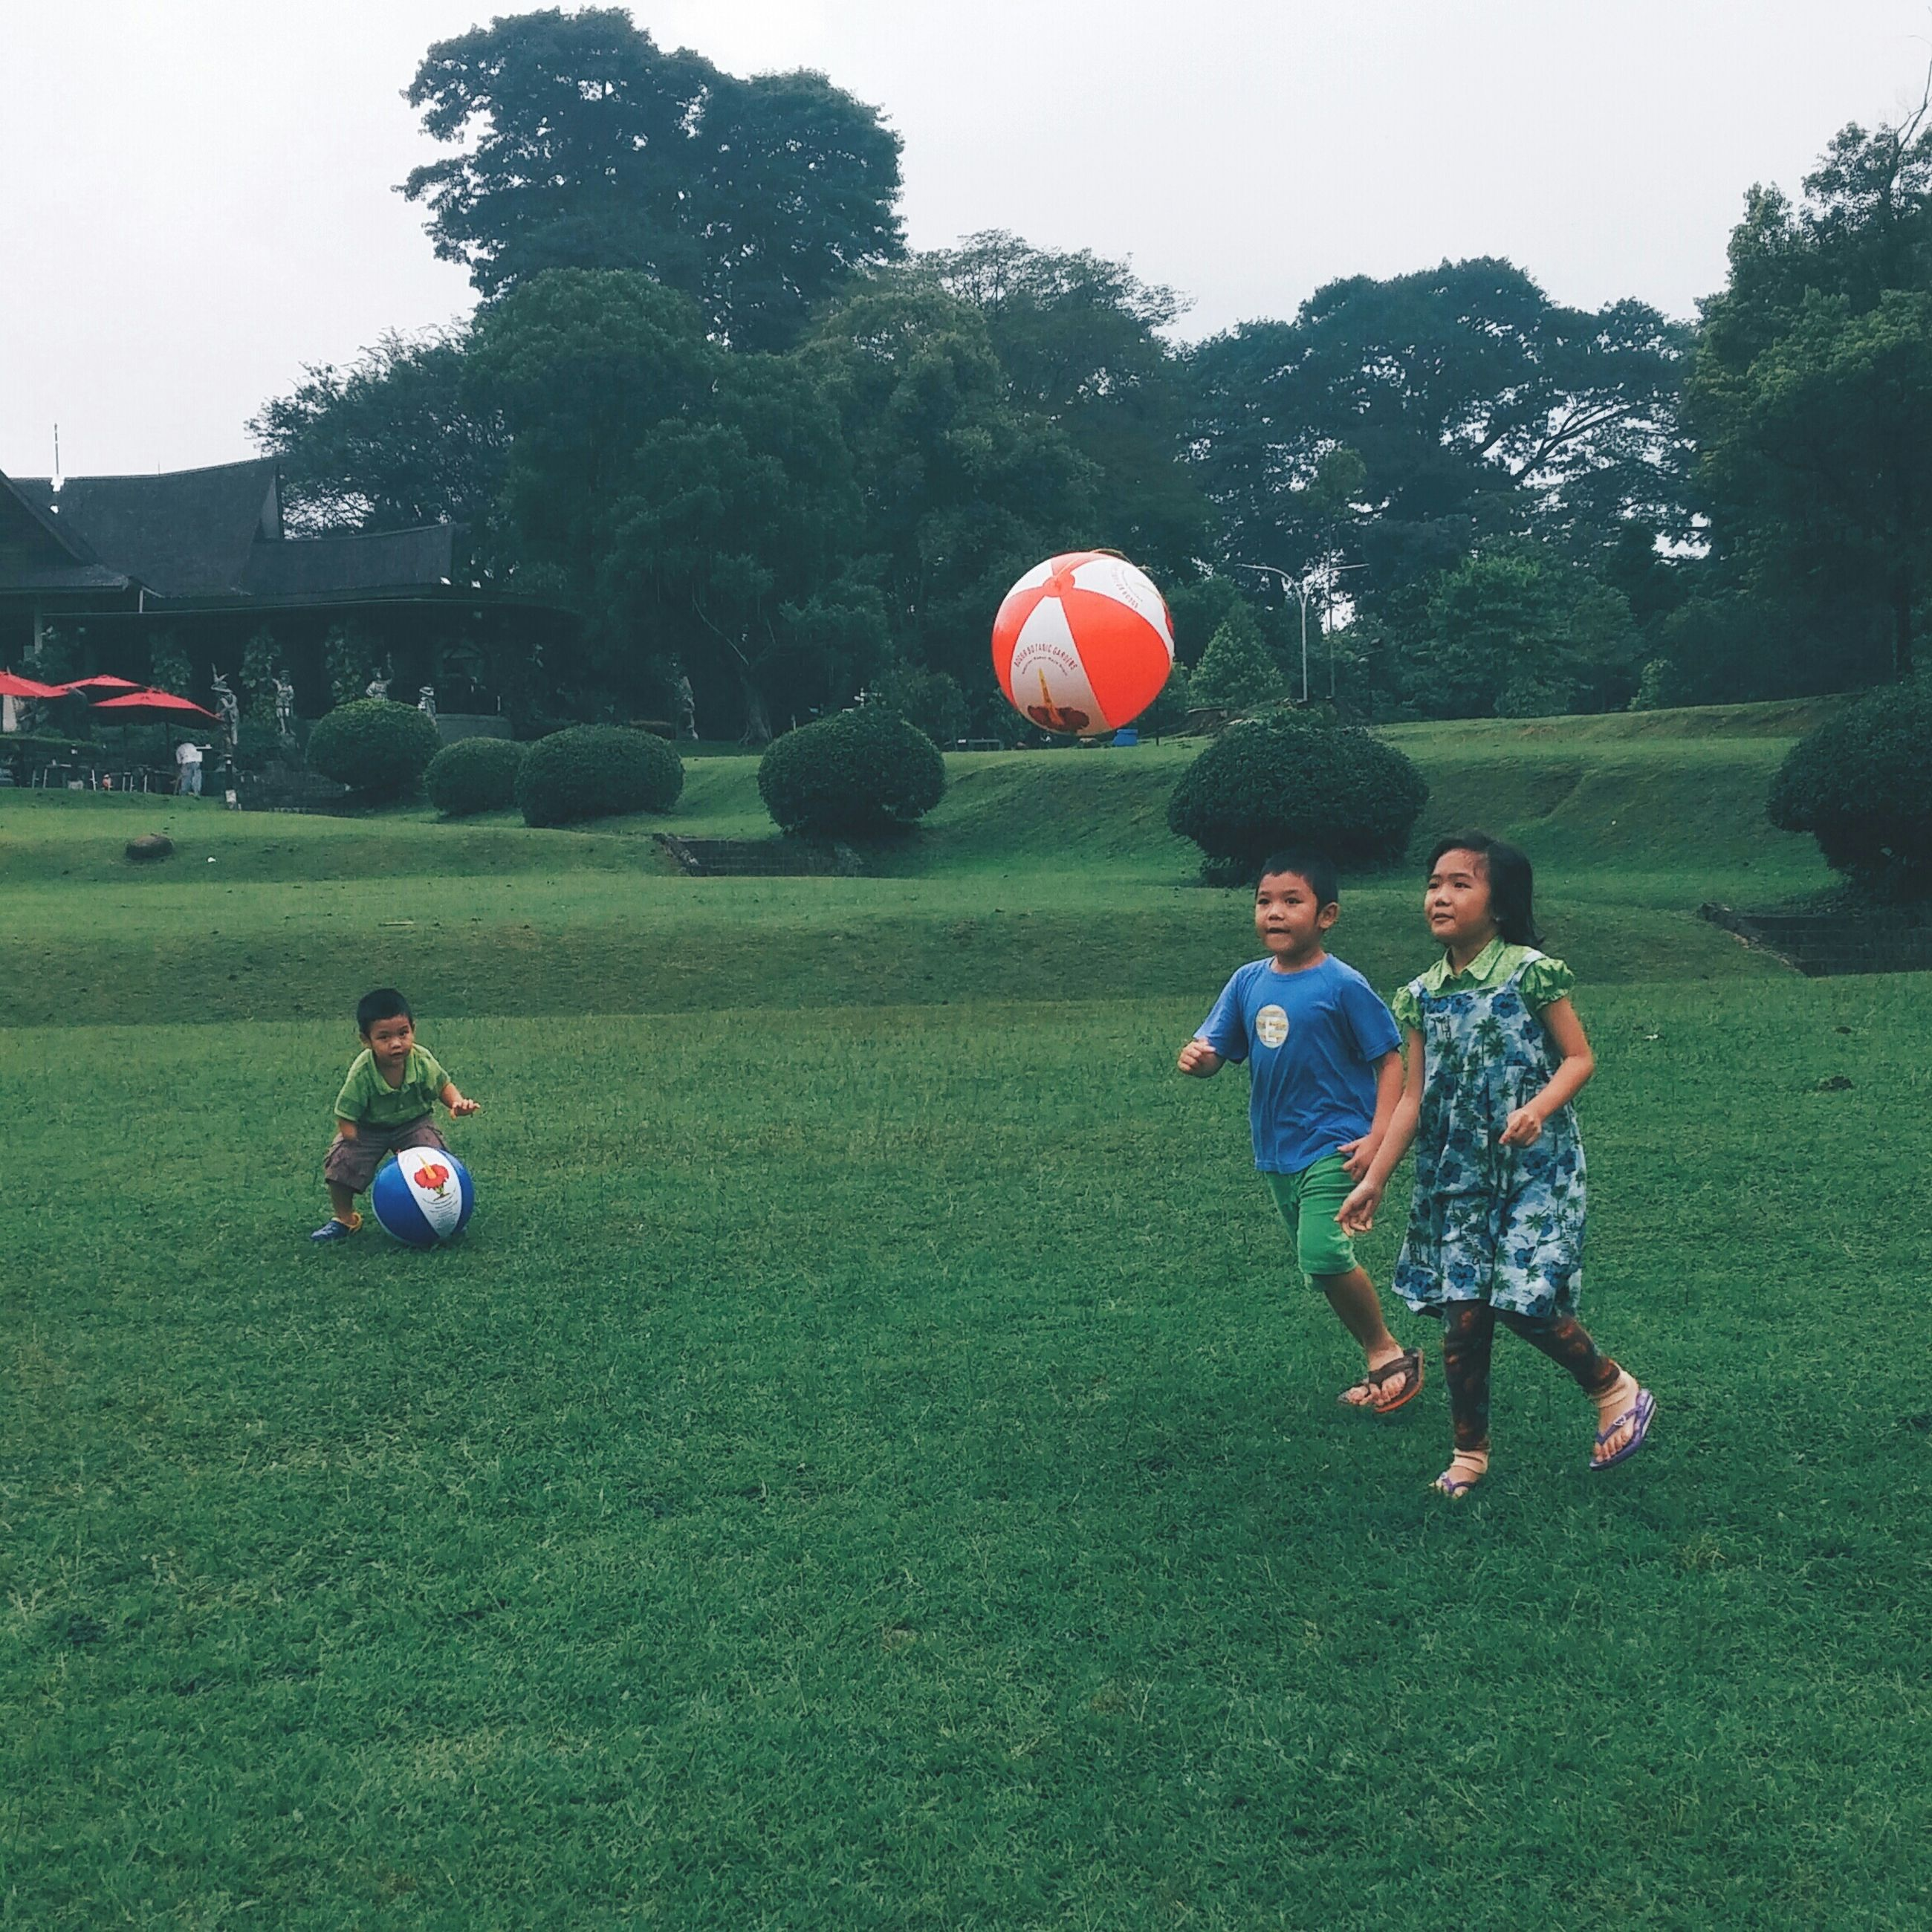 grass, childhood, leisure activity, lifestyles, boys, field, green color, grassy, elementary age, girls, casual clothing, full length, playing, sport, playful, fun, tree, togetherness